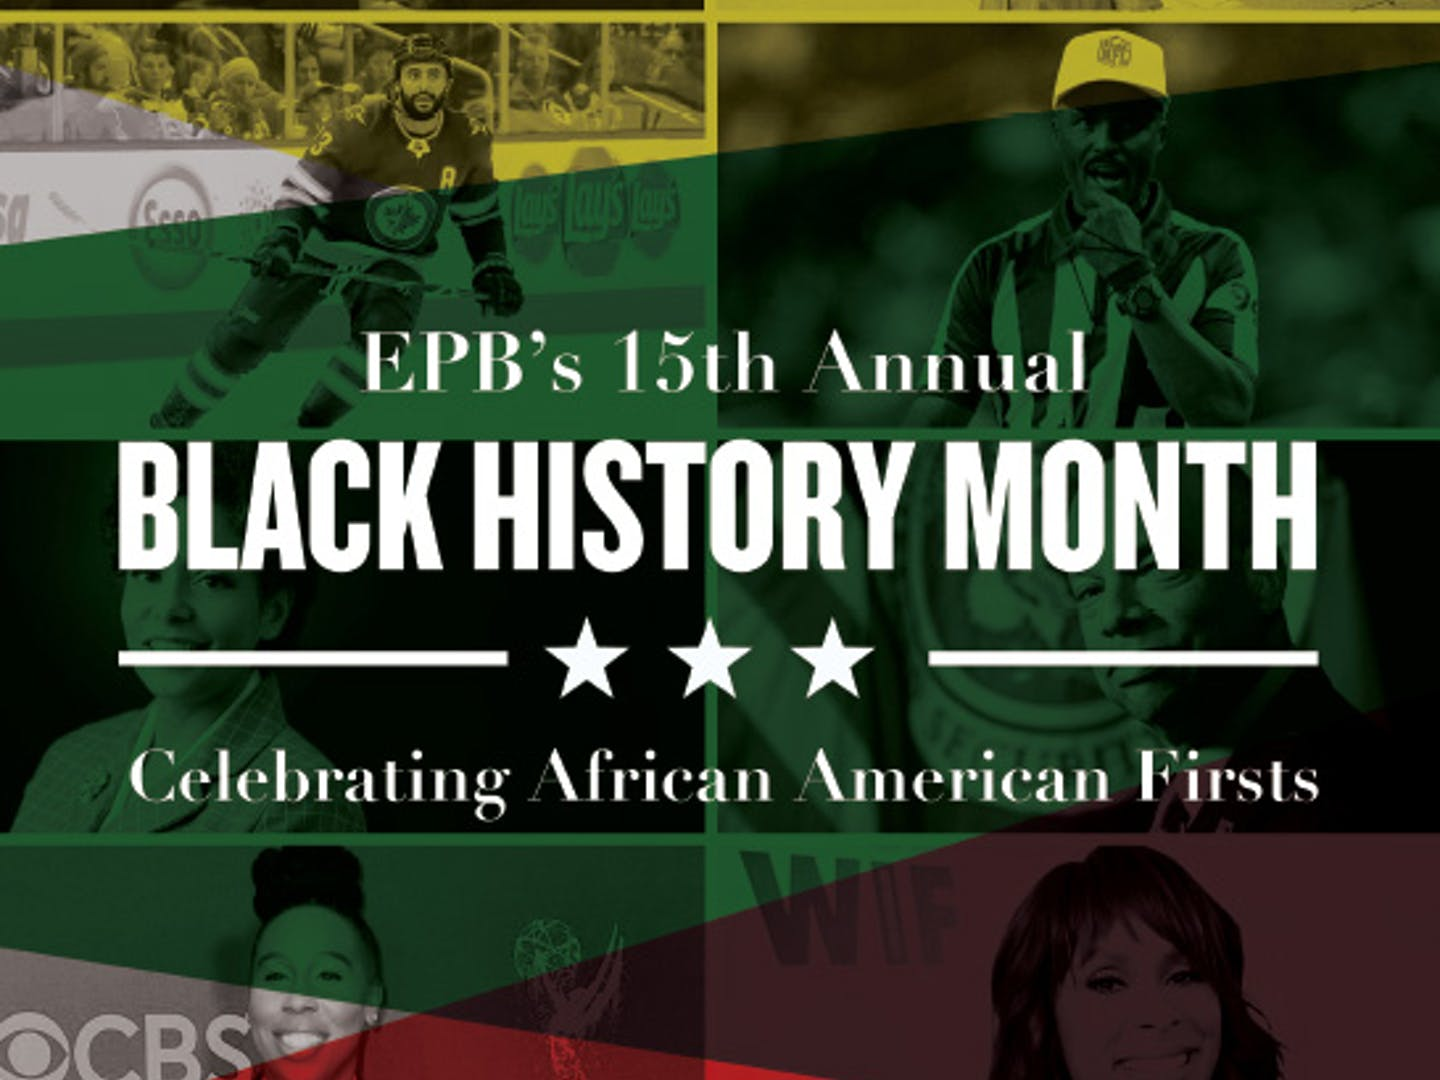 epb-invites-students-to-celebrate-african-american-achievement-by-participating-in-black-history-month-poetry-contest.jpeg